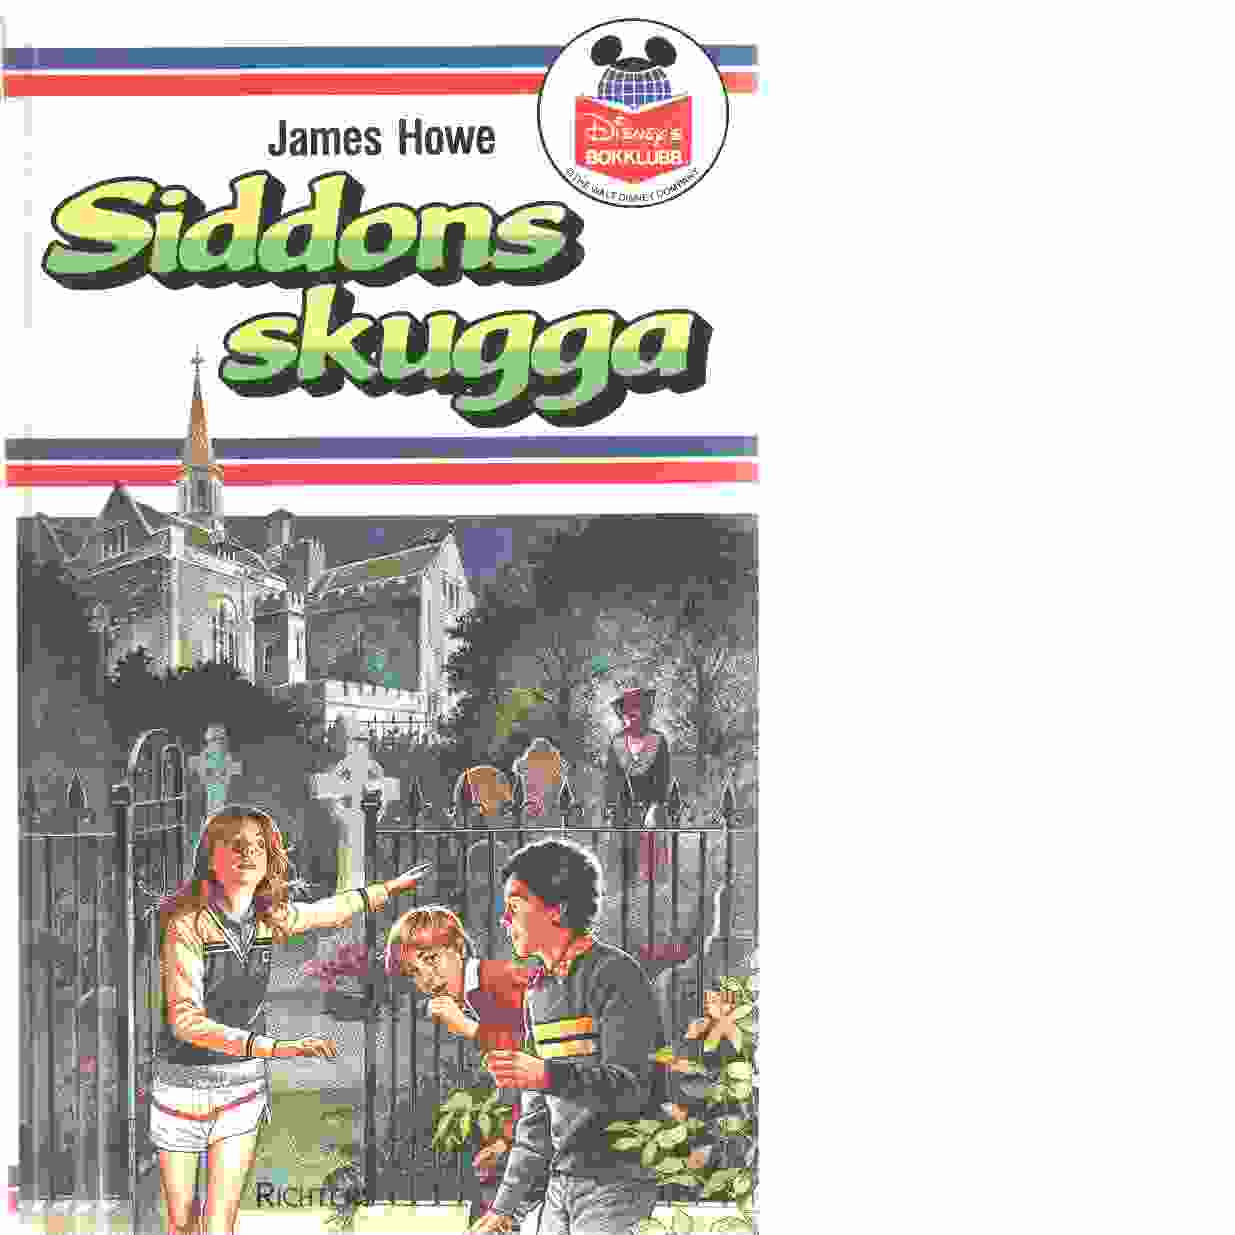 Siddons skugga - Howe, James